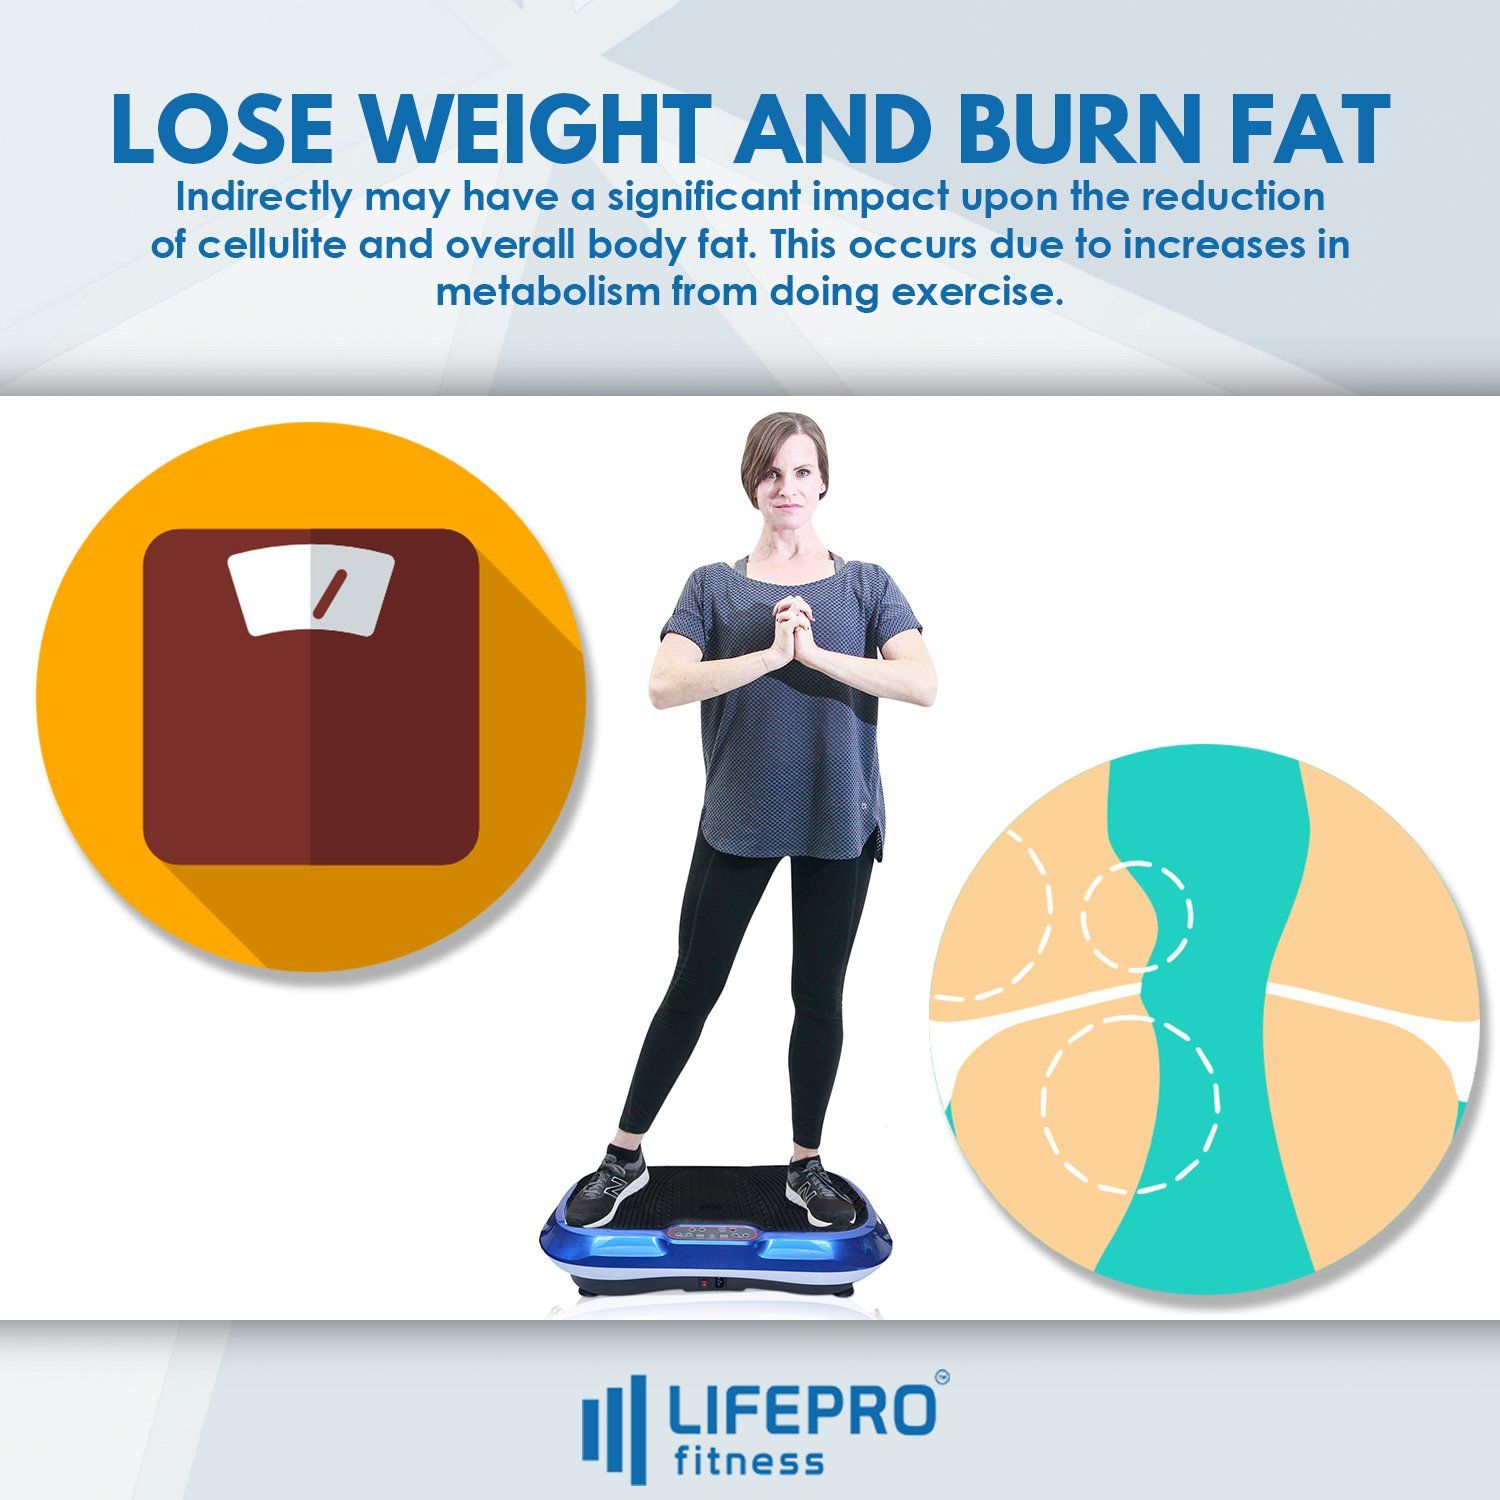 Power Plate Exercise Routine For Weight Loss